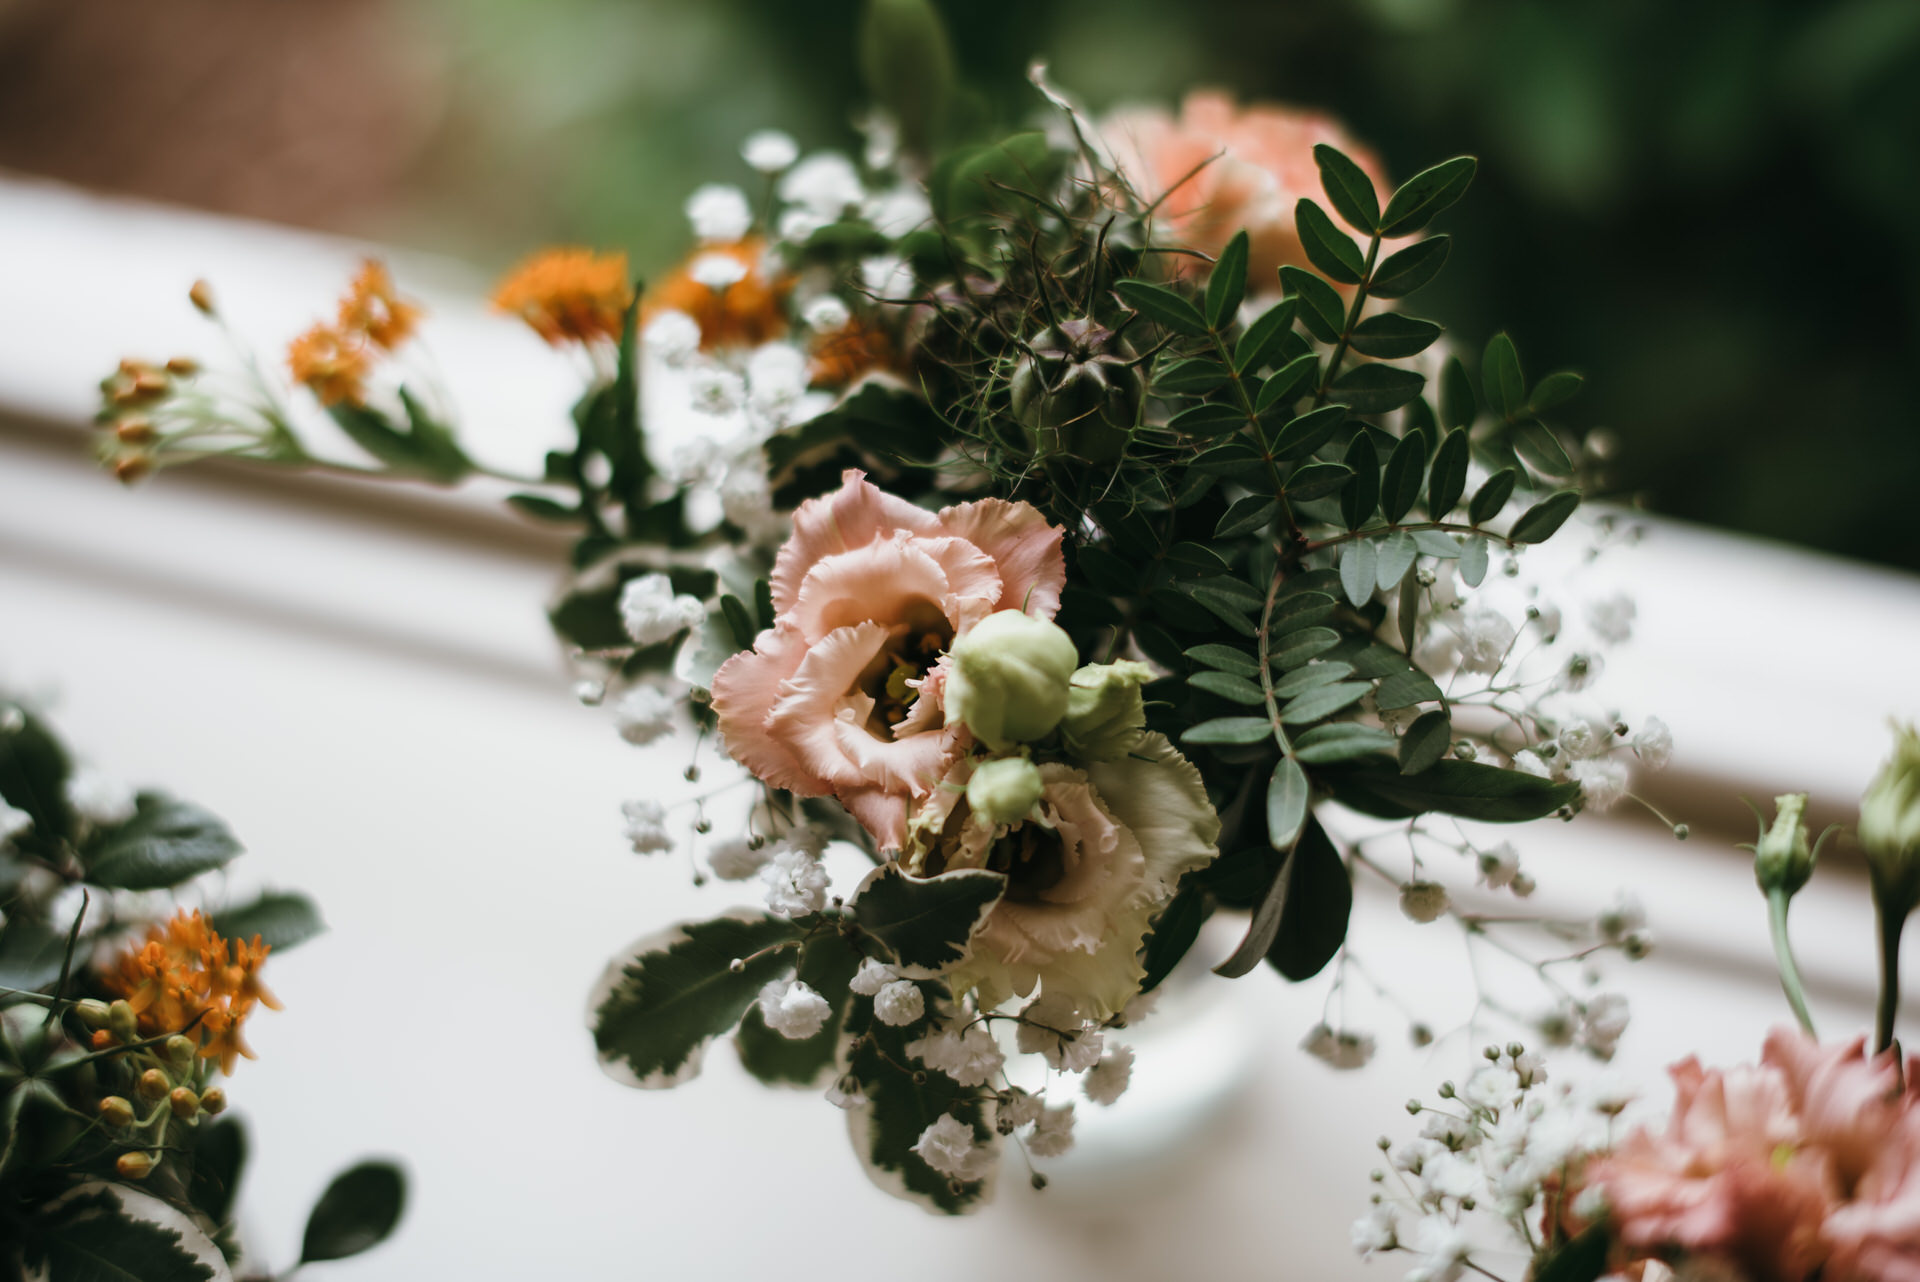 Wedding flowers for tables